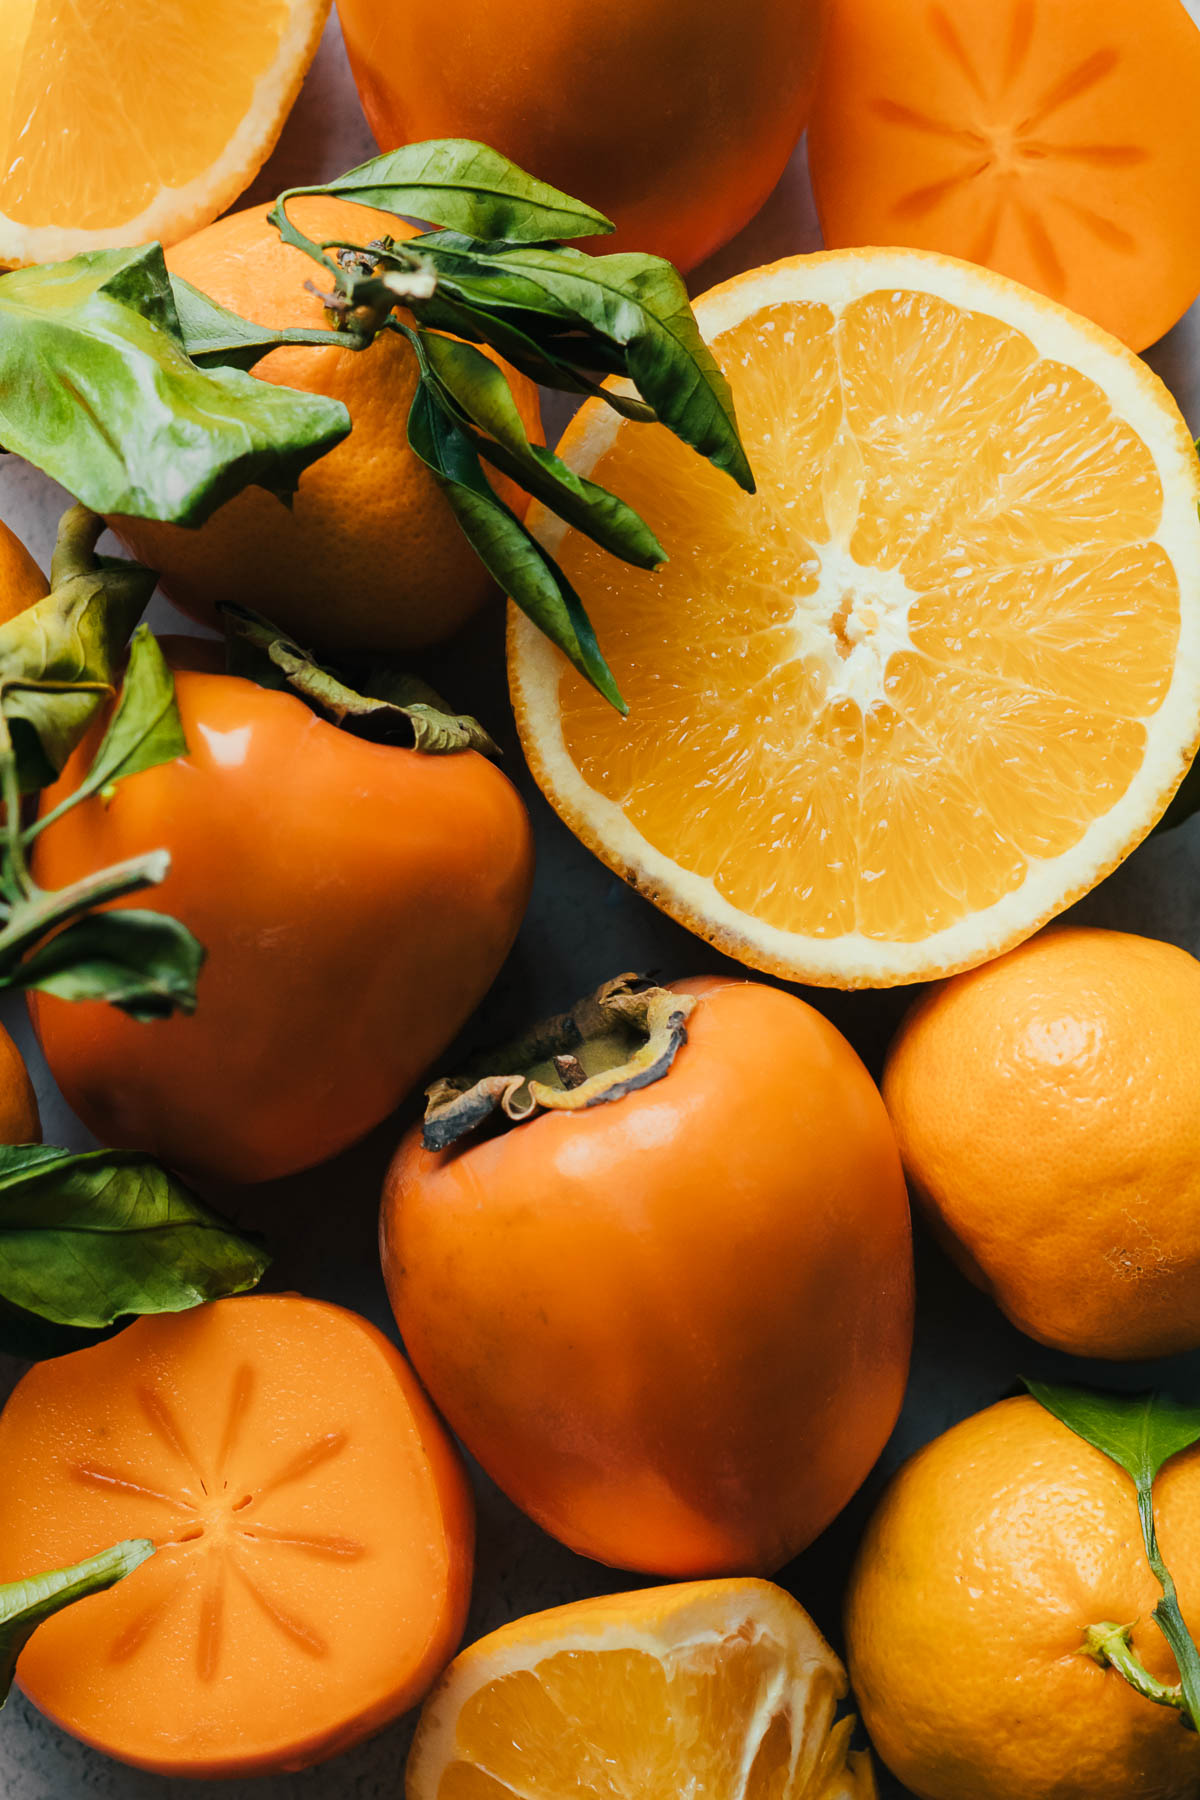 Sliced oranges with leaves and persimmons.